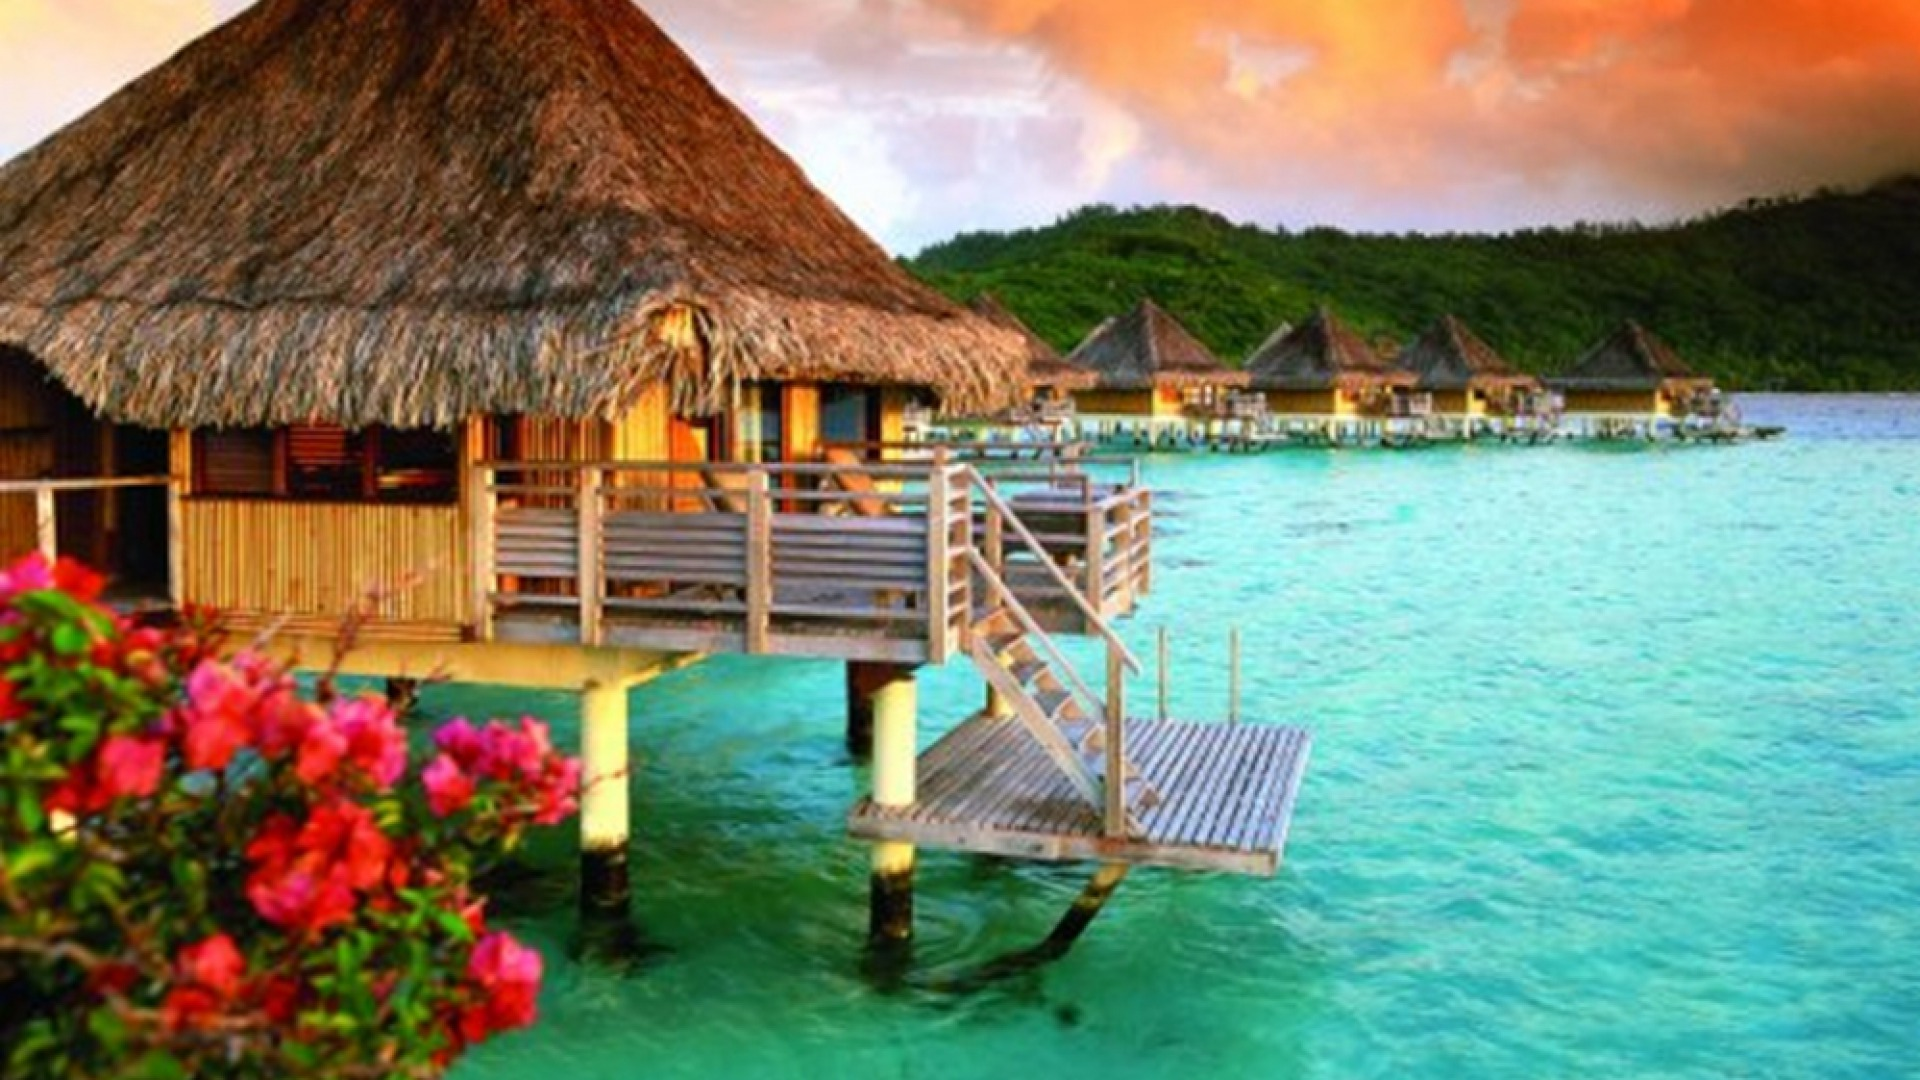 Bora Bora Hd Wallpaper HD Wallpaper 1920x1080